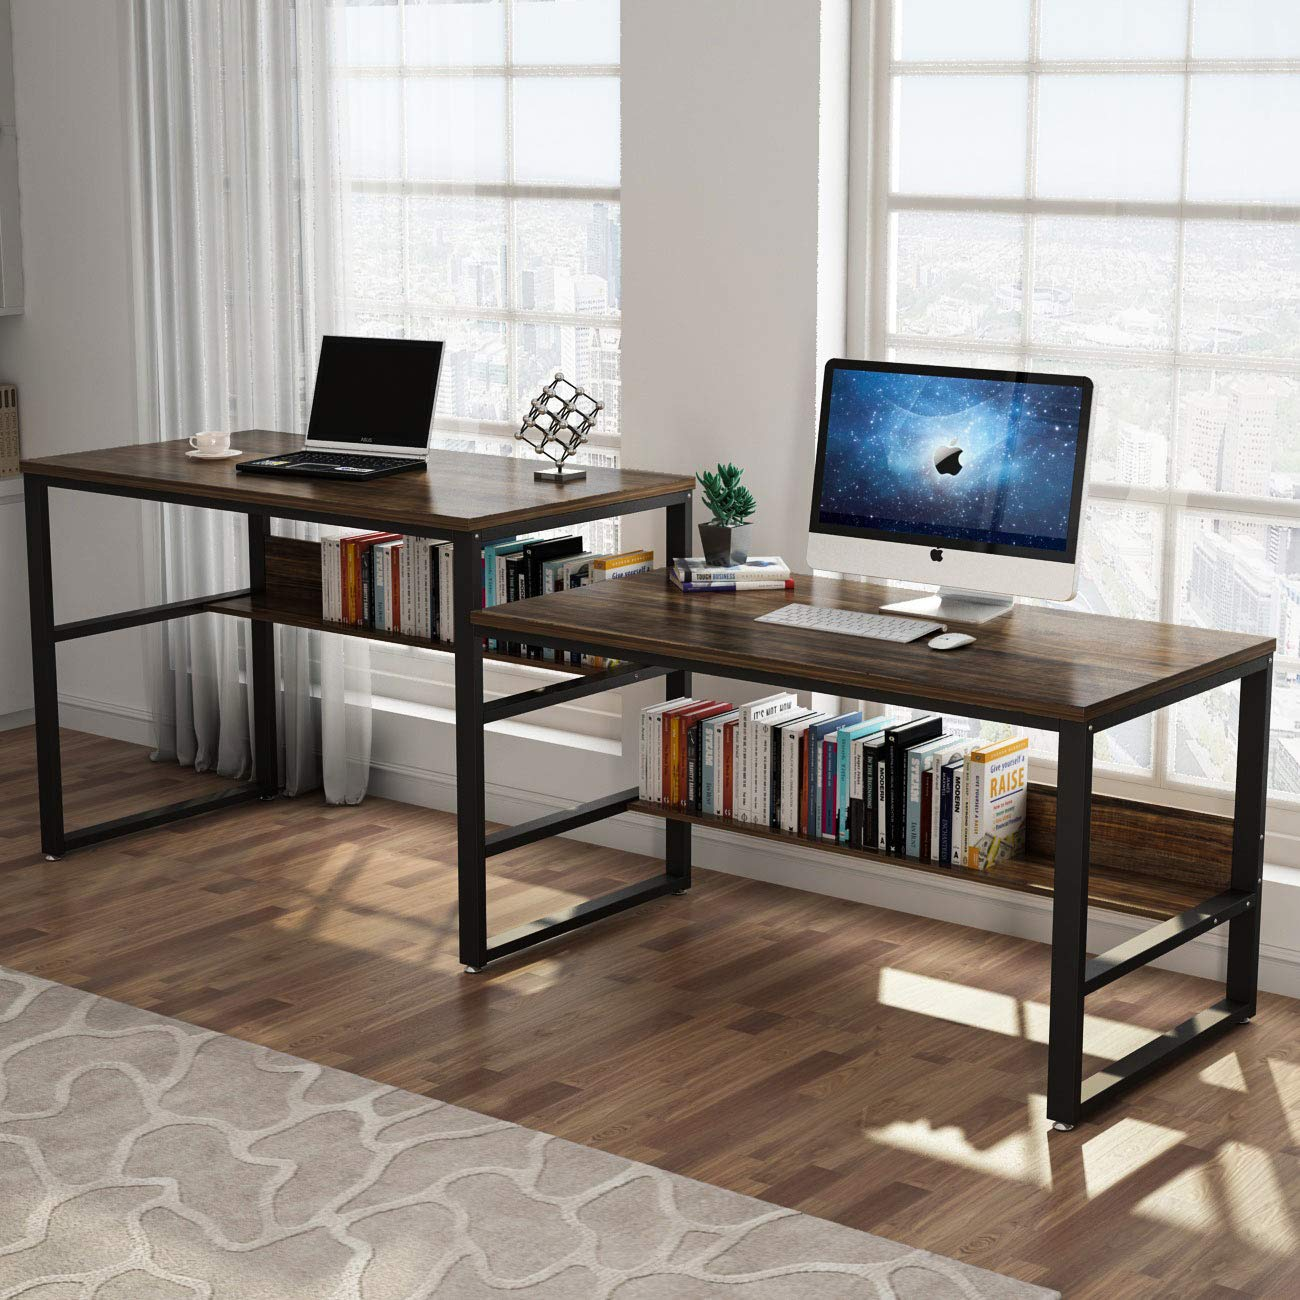 Tribesigns 94.48 Inches Two Person Desk, Double Computer Desk Sit and Standing Desk for Two Person, Simple Writing Office Desk in Rustic Finish for Home Office (Rustic)